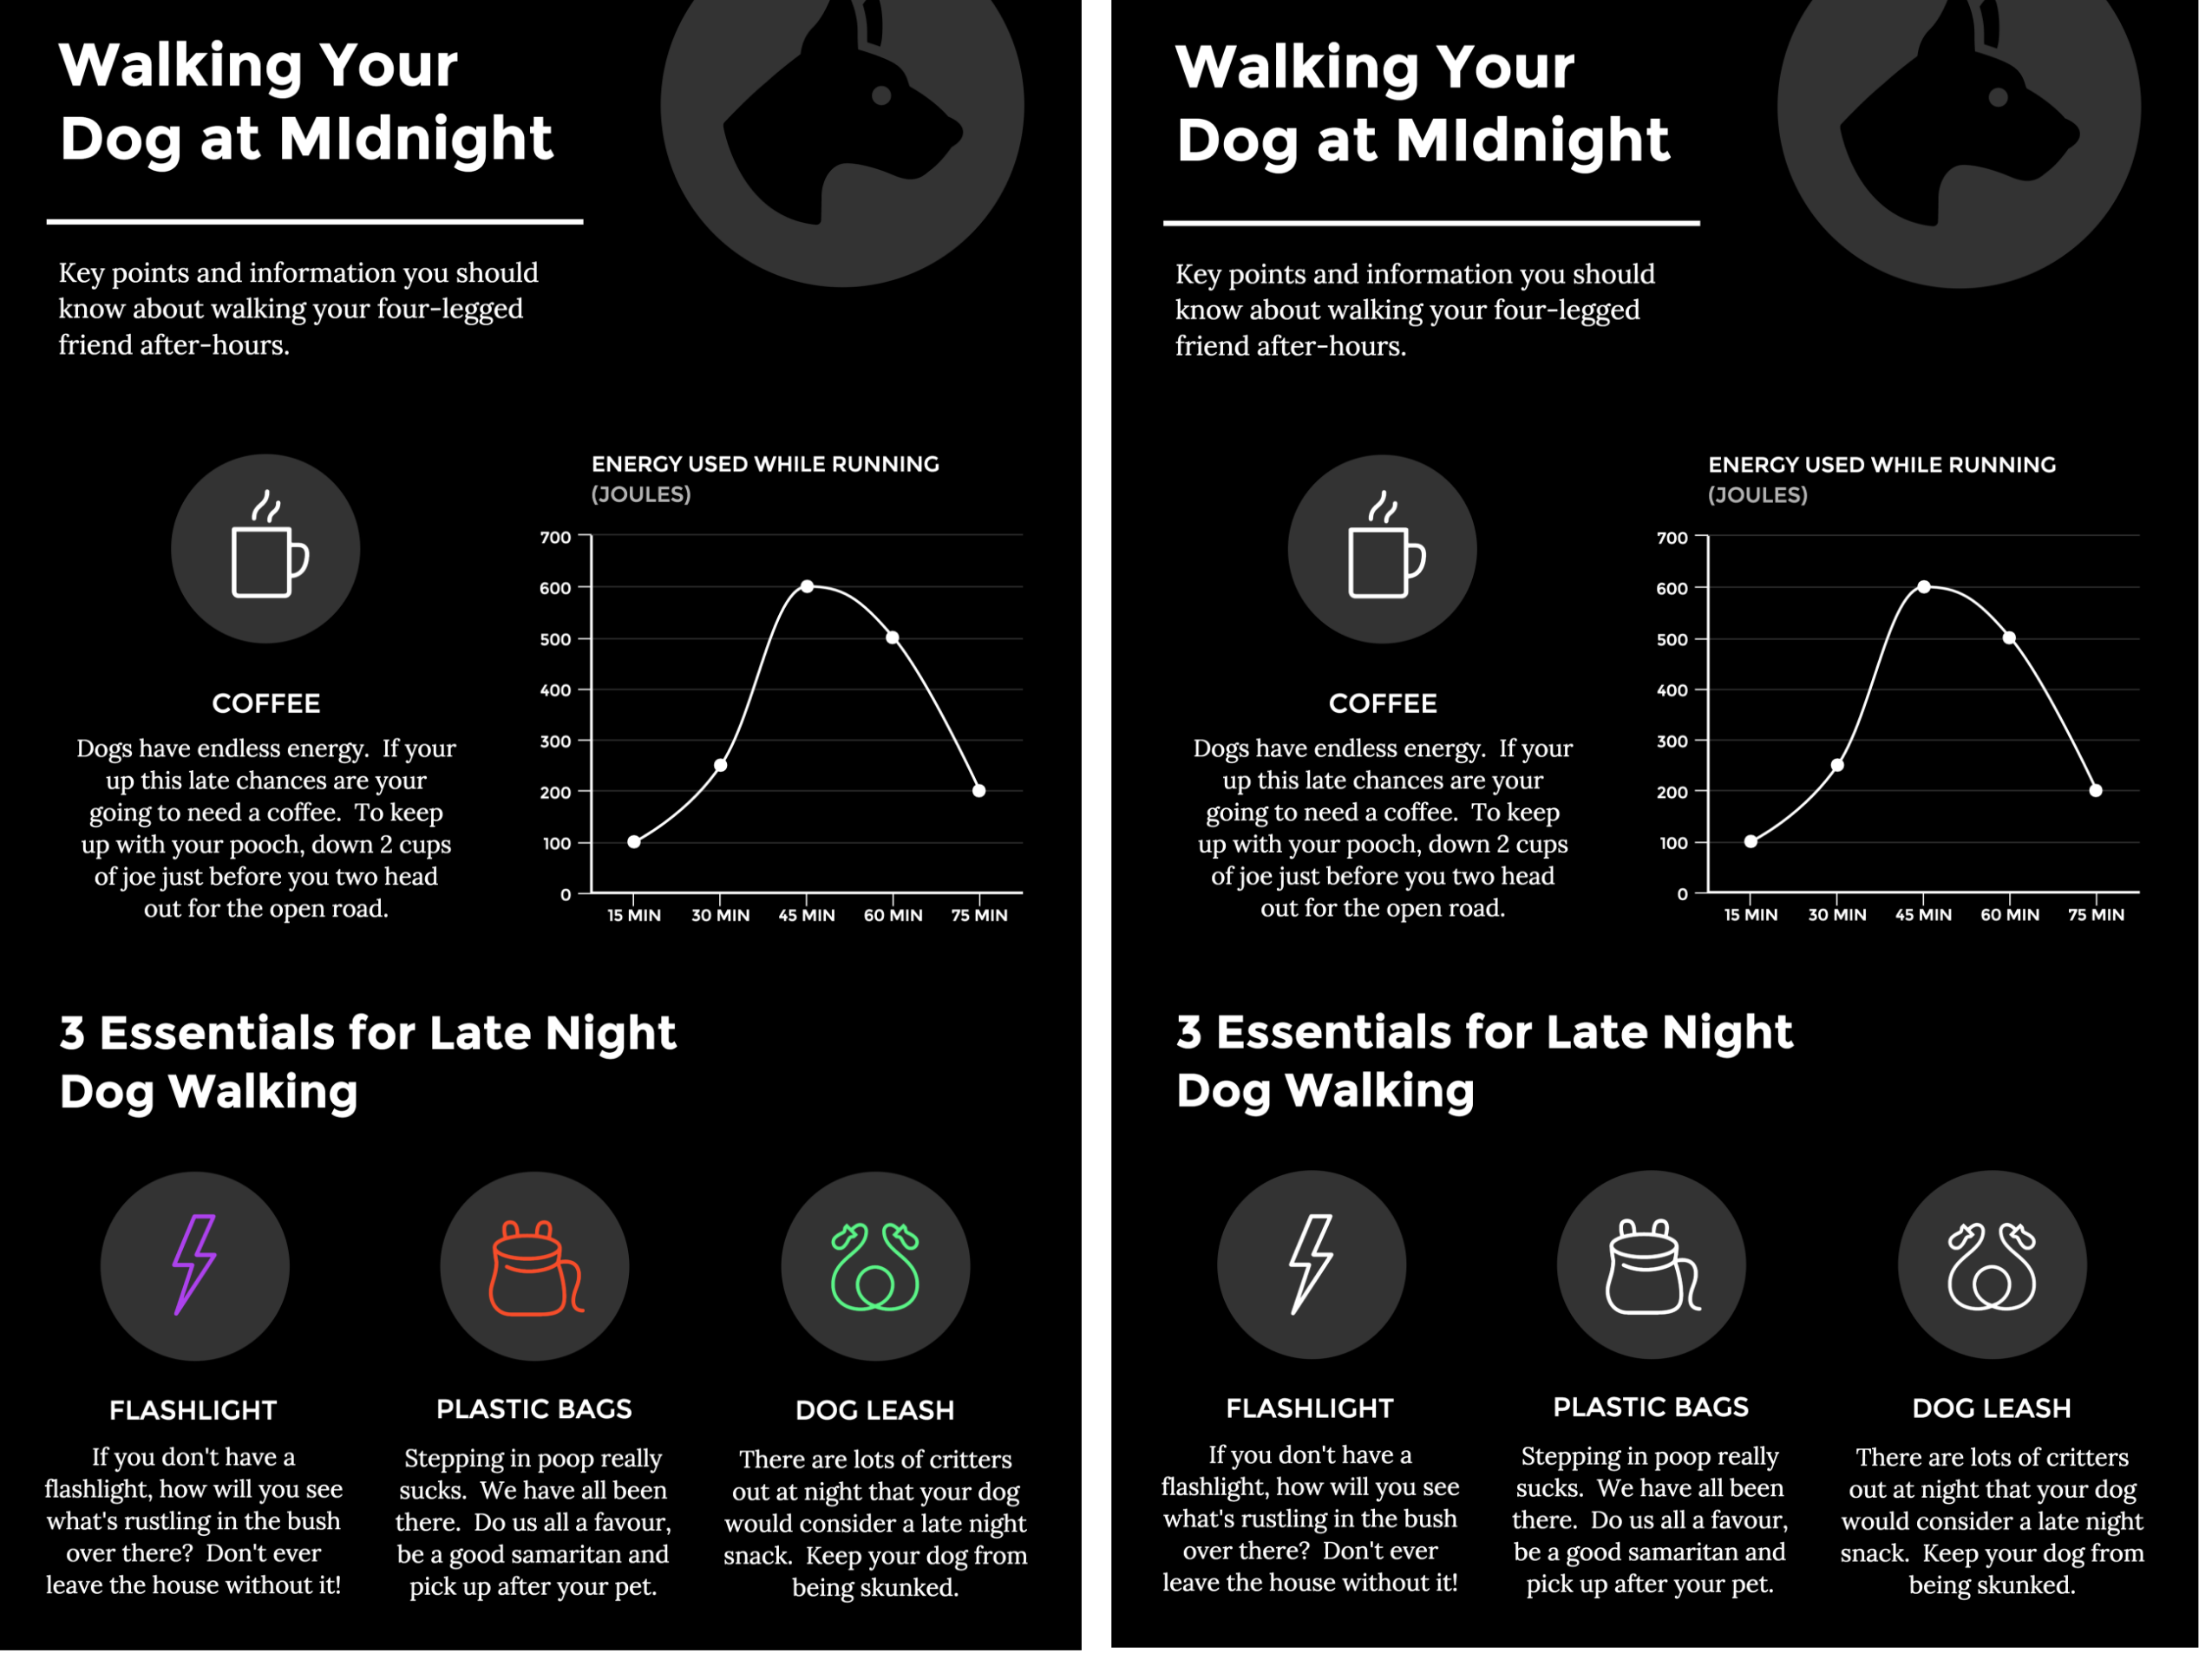 6 Ways To Use Icons In Infographic Design